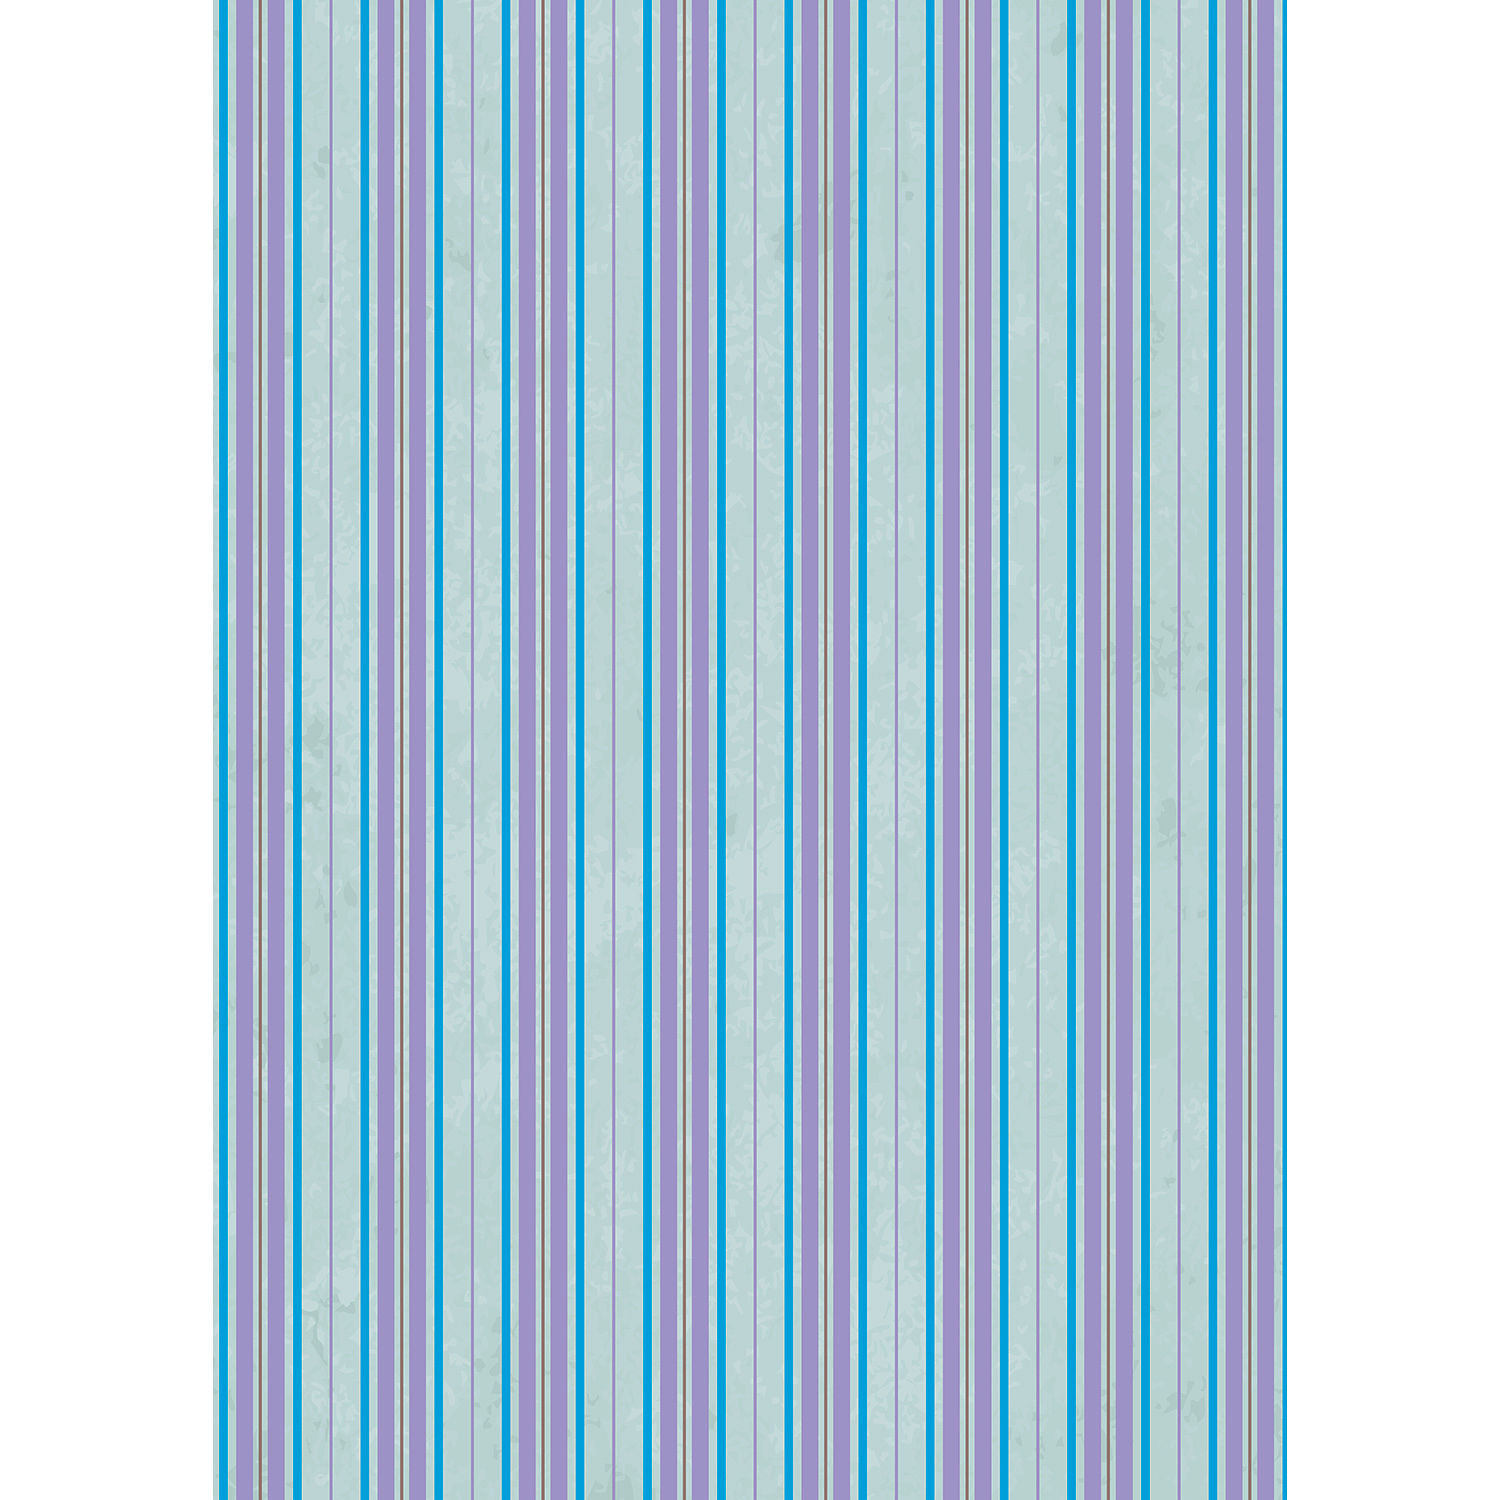 Westcott Striped Wallpaper Matte Vinyl D0049 63x87 Vy Bl Bh